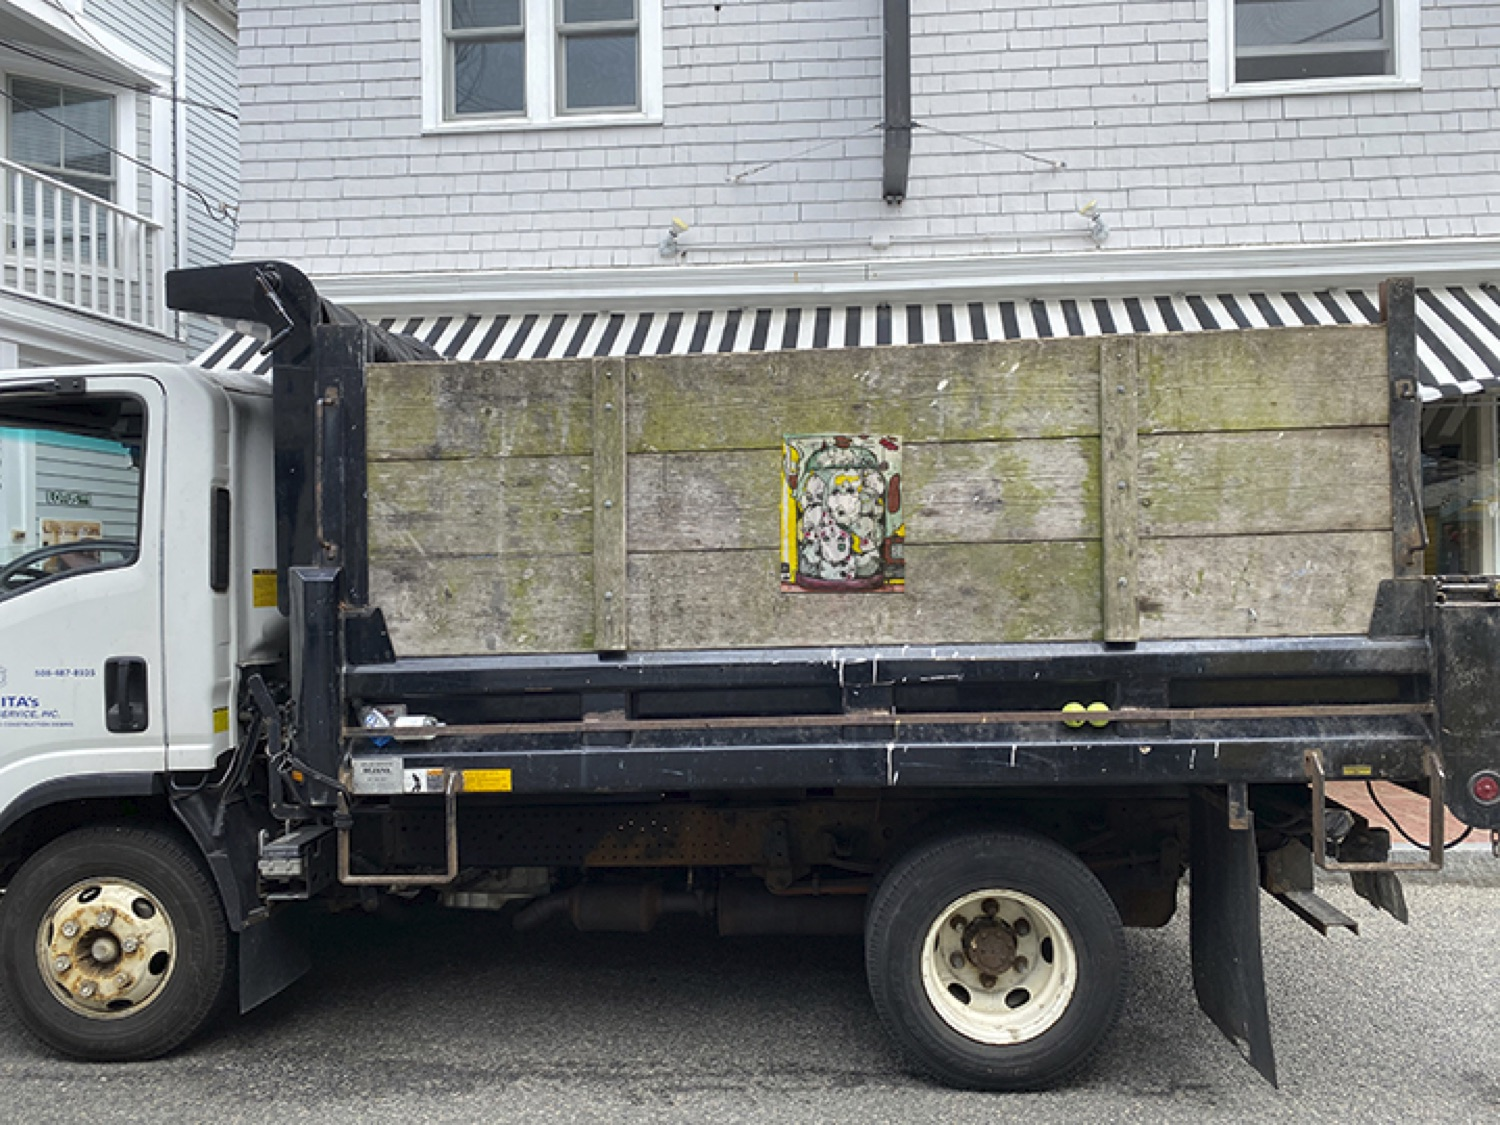 Broadside center on wooden side of large truck in front of white building, photo as mid-long shot.